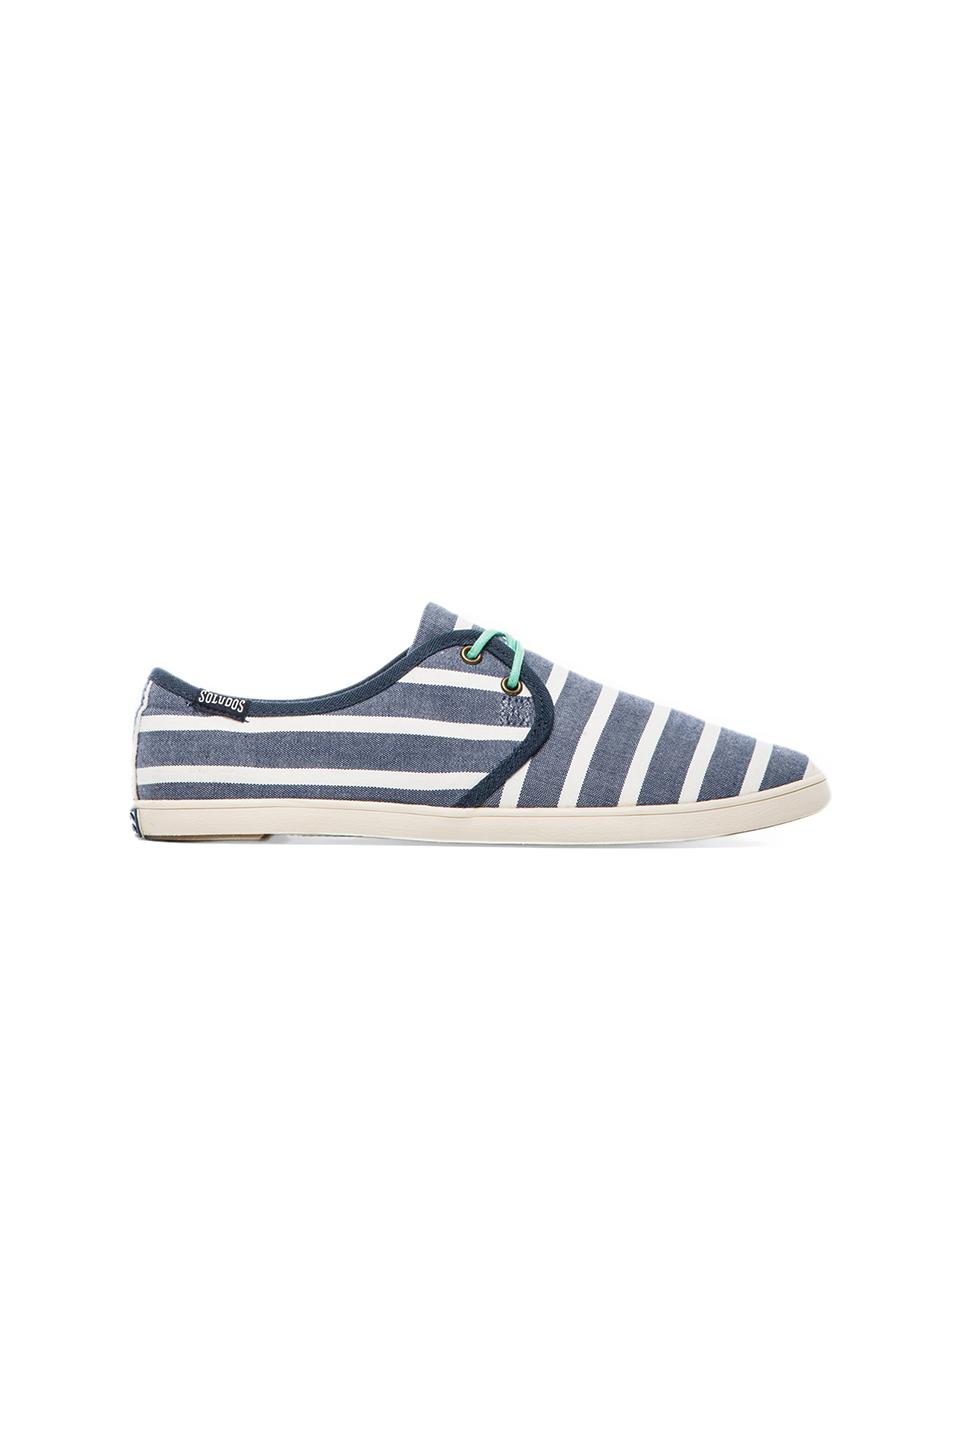 Soludos Sand Shoe Lace Up Classic in Light Navy White